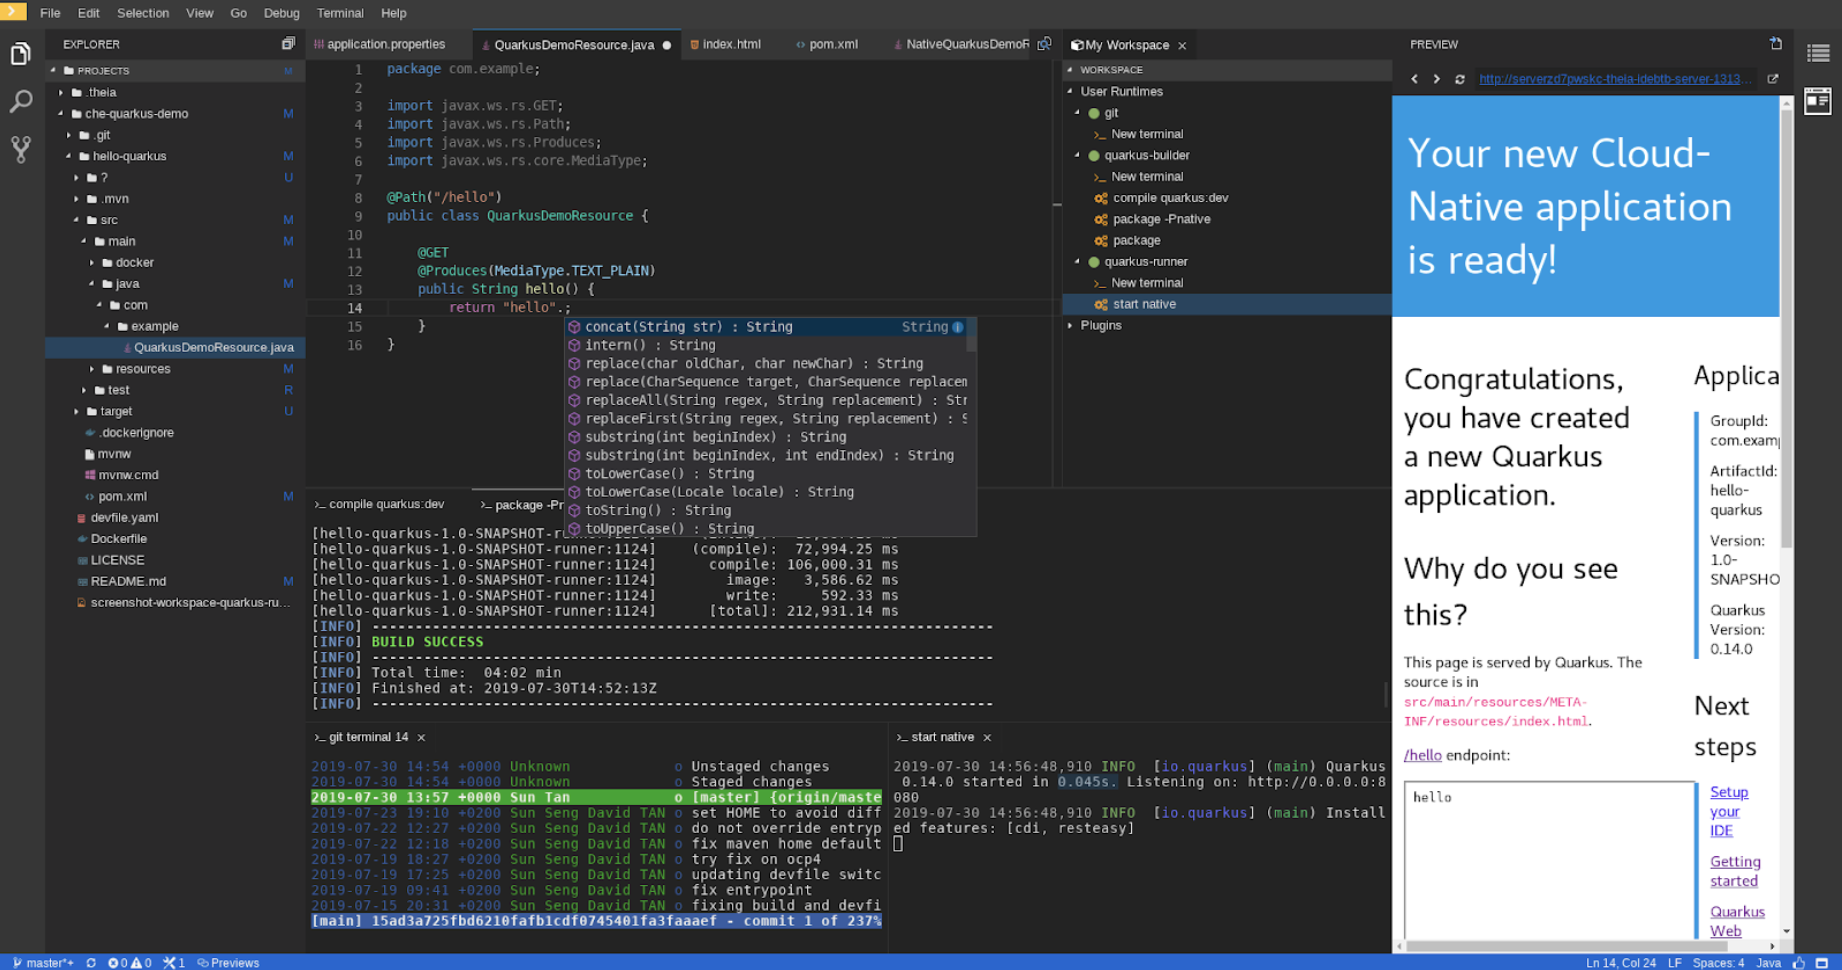 Eclipse Che, Kubernetes-native IDE, version 7 now available